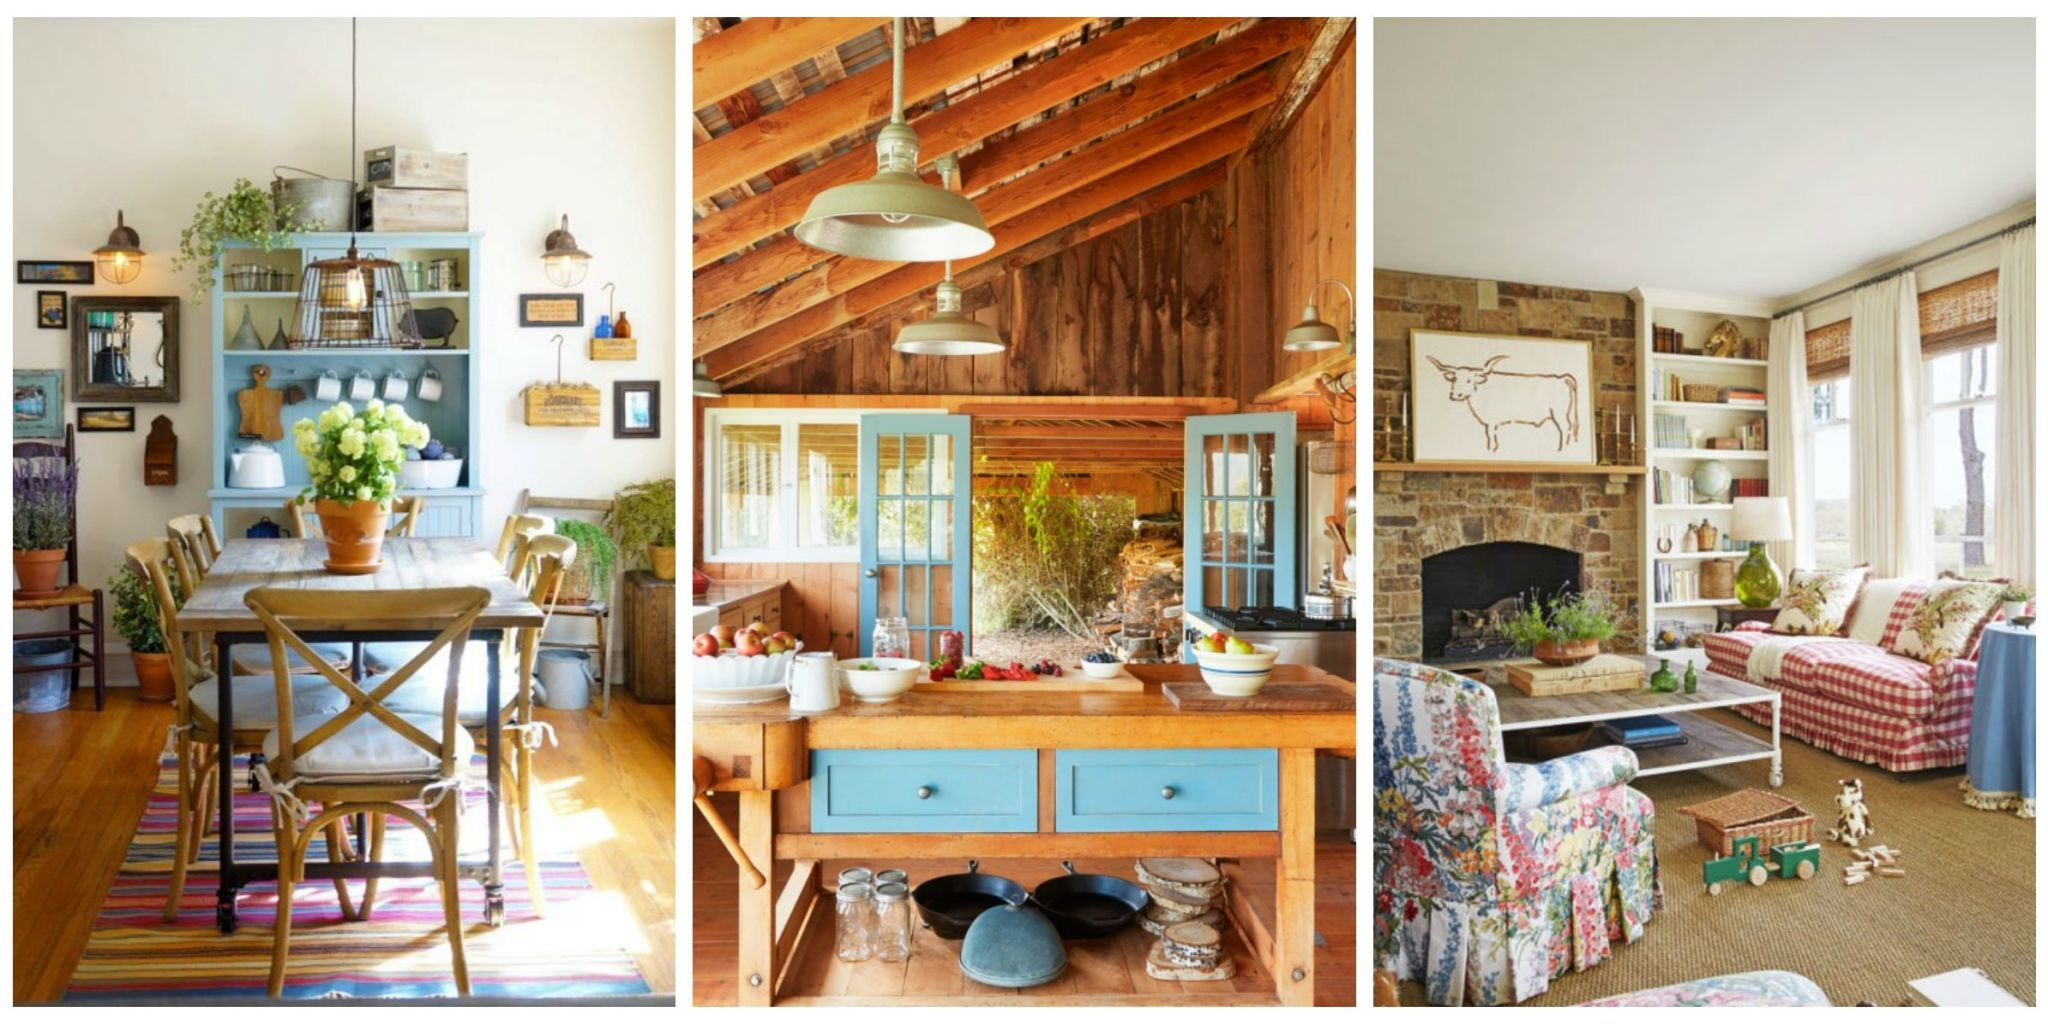 From Bedrooms To Kitchens, These Simple And Rustic Rooms Inspire.